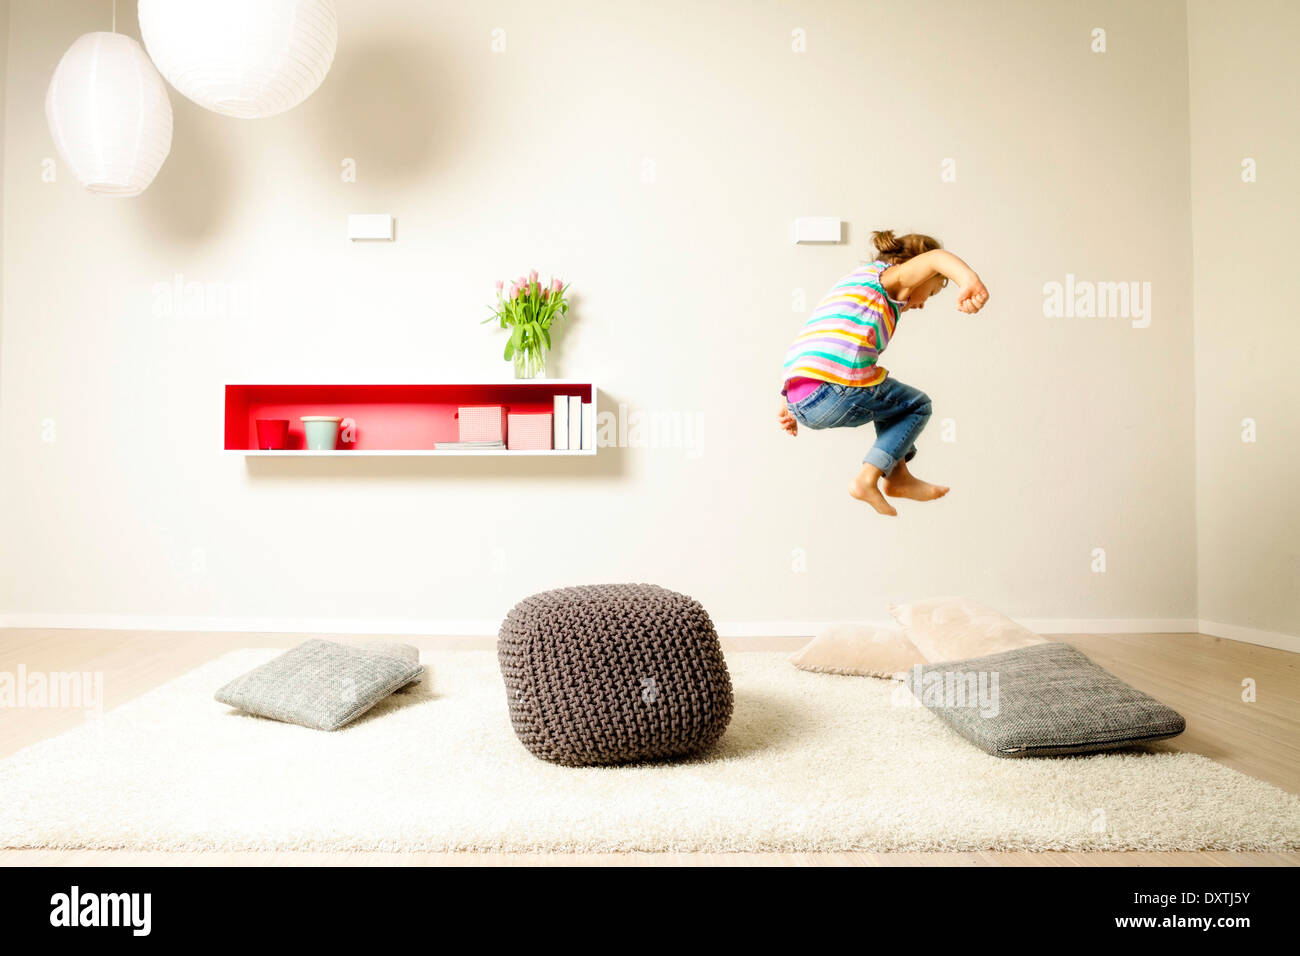 Girl jumping across cushions, having fun, Munich, Bavaria, Germany - Stock Image